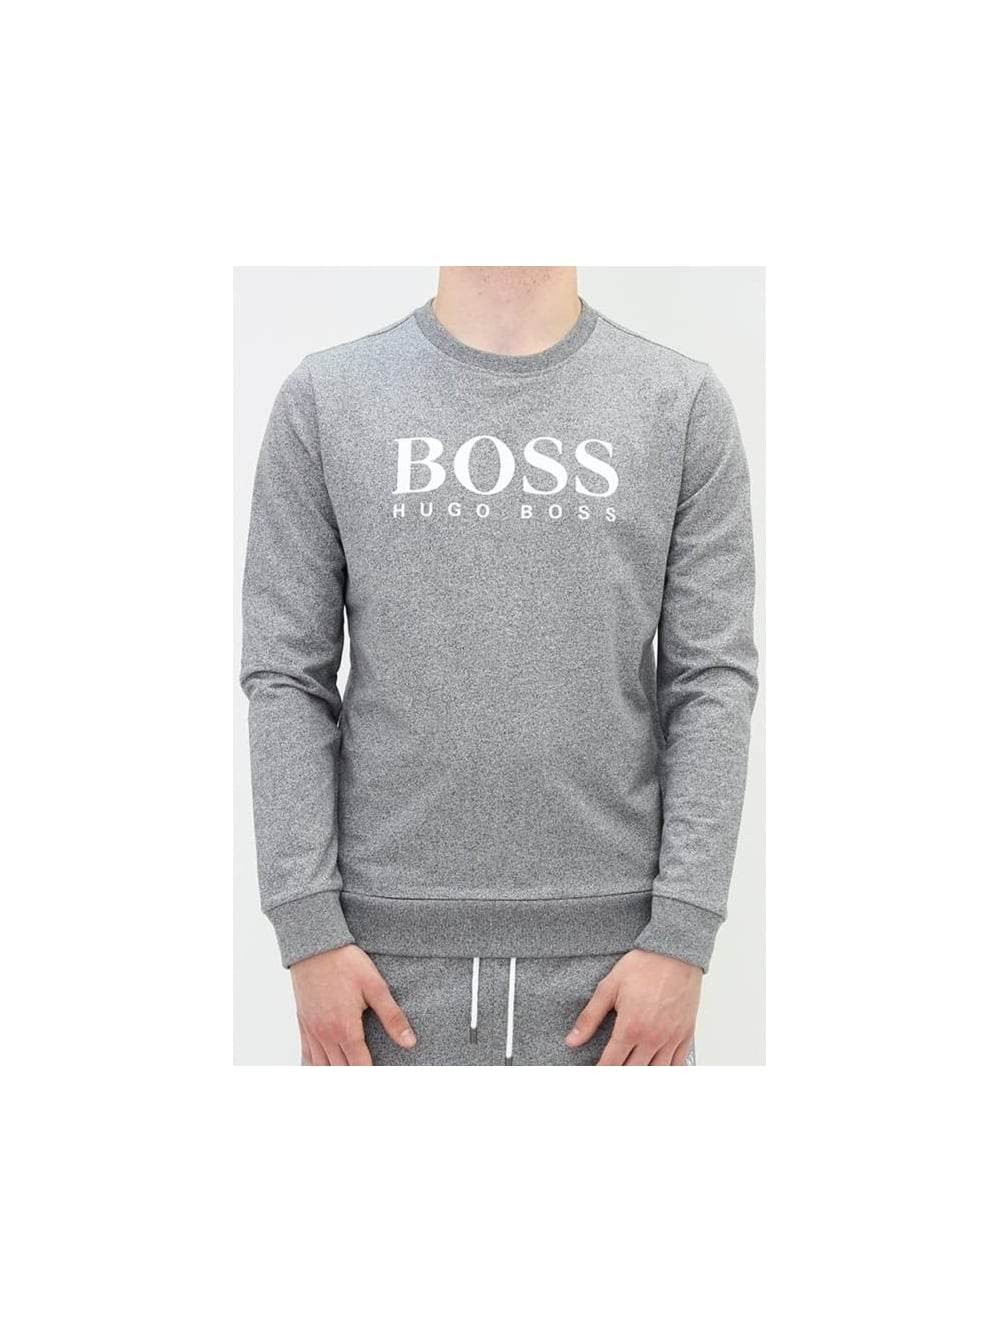 b42e81d5be6 HUGO BOSS - BOSS Hugo Boss Chest Logo Sweatshirt In Charcoal ...